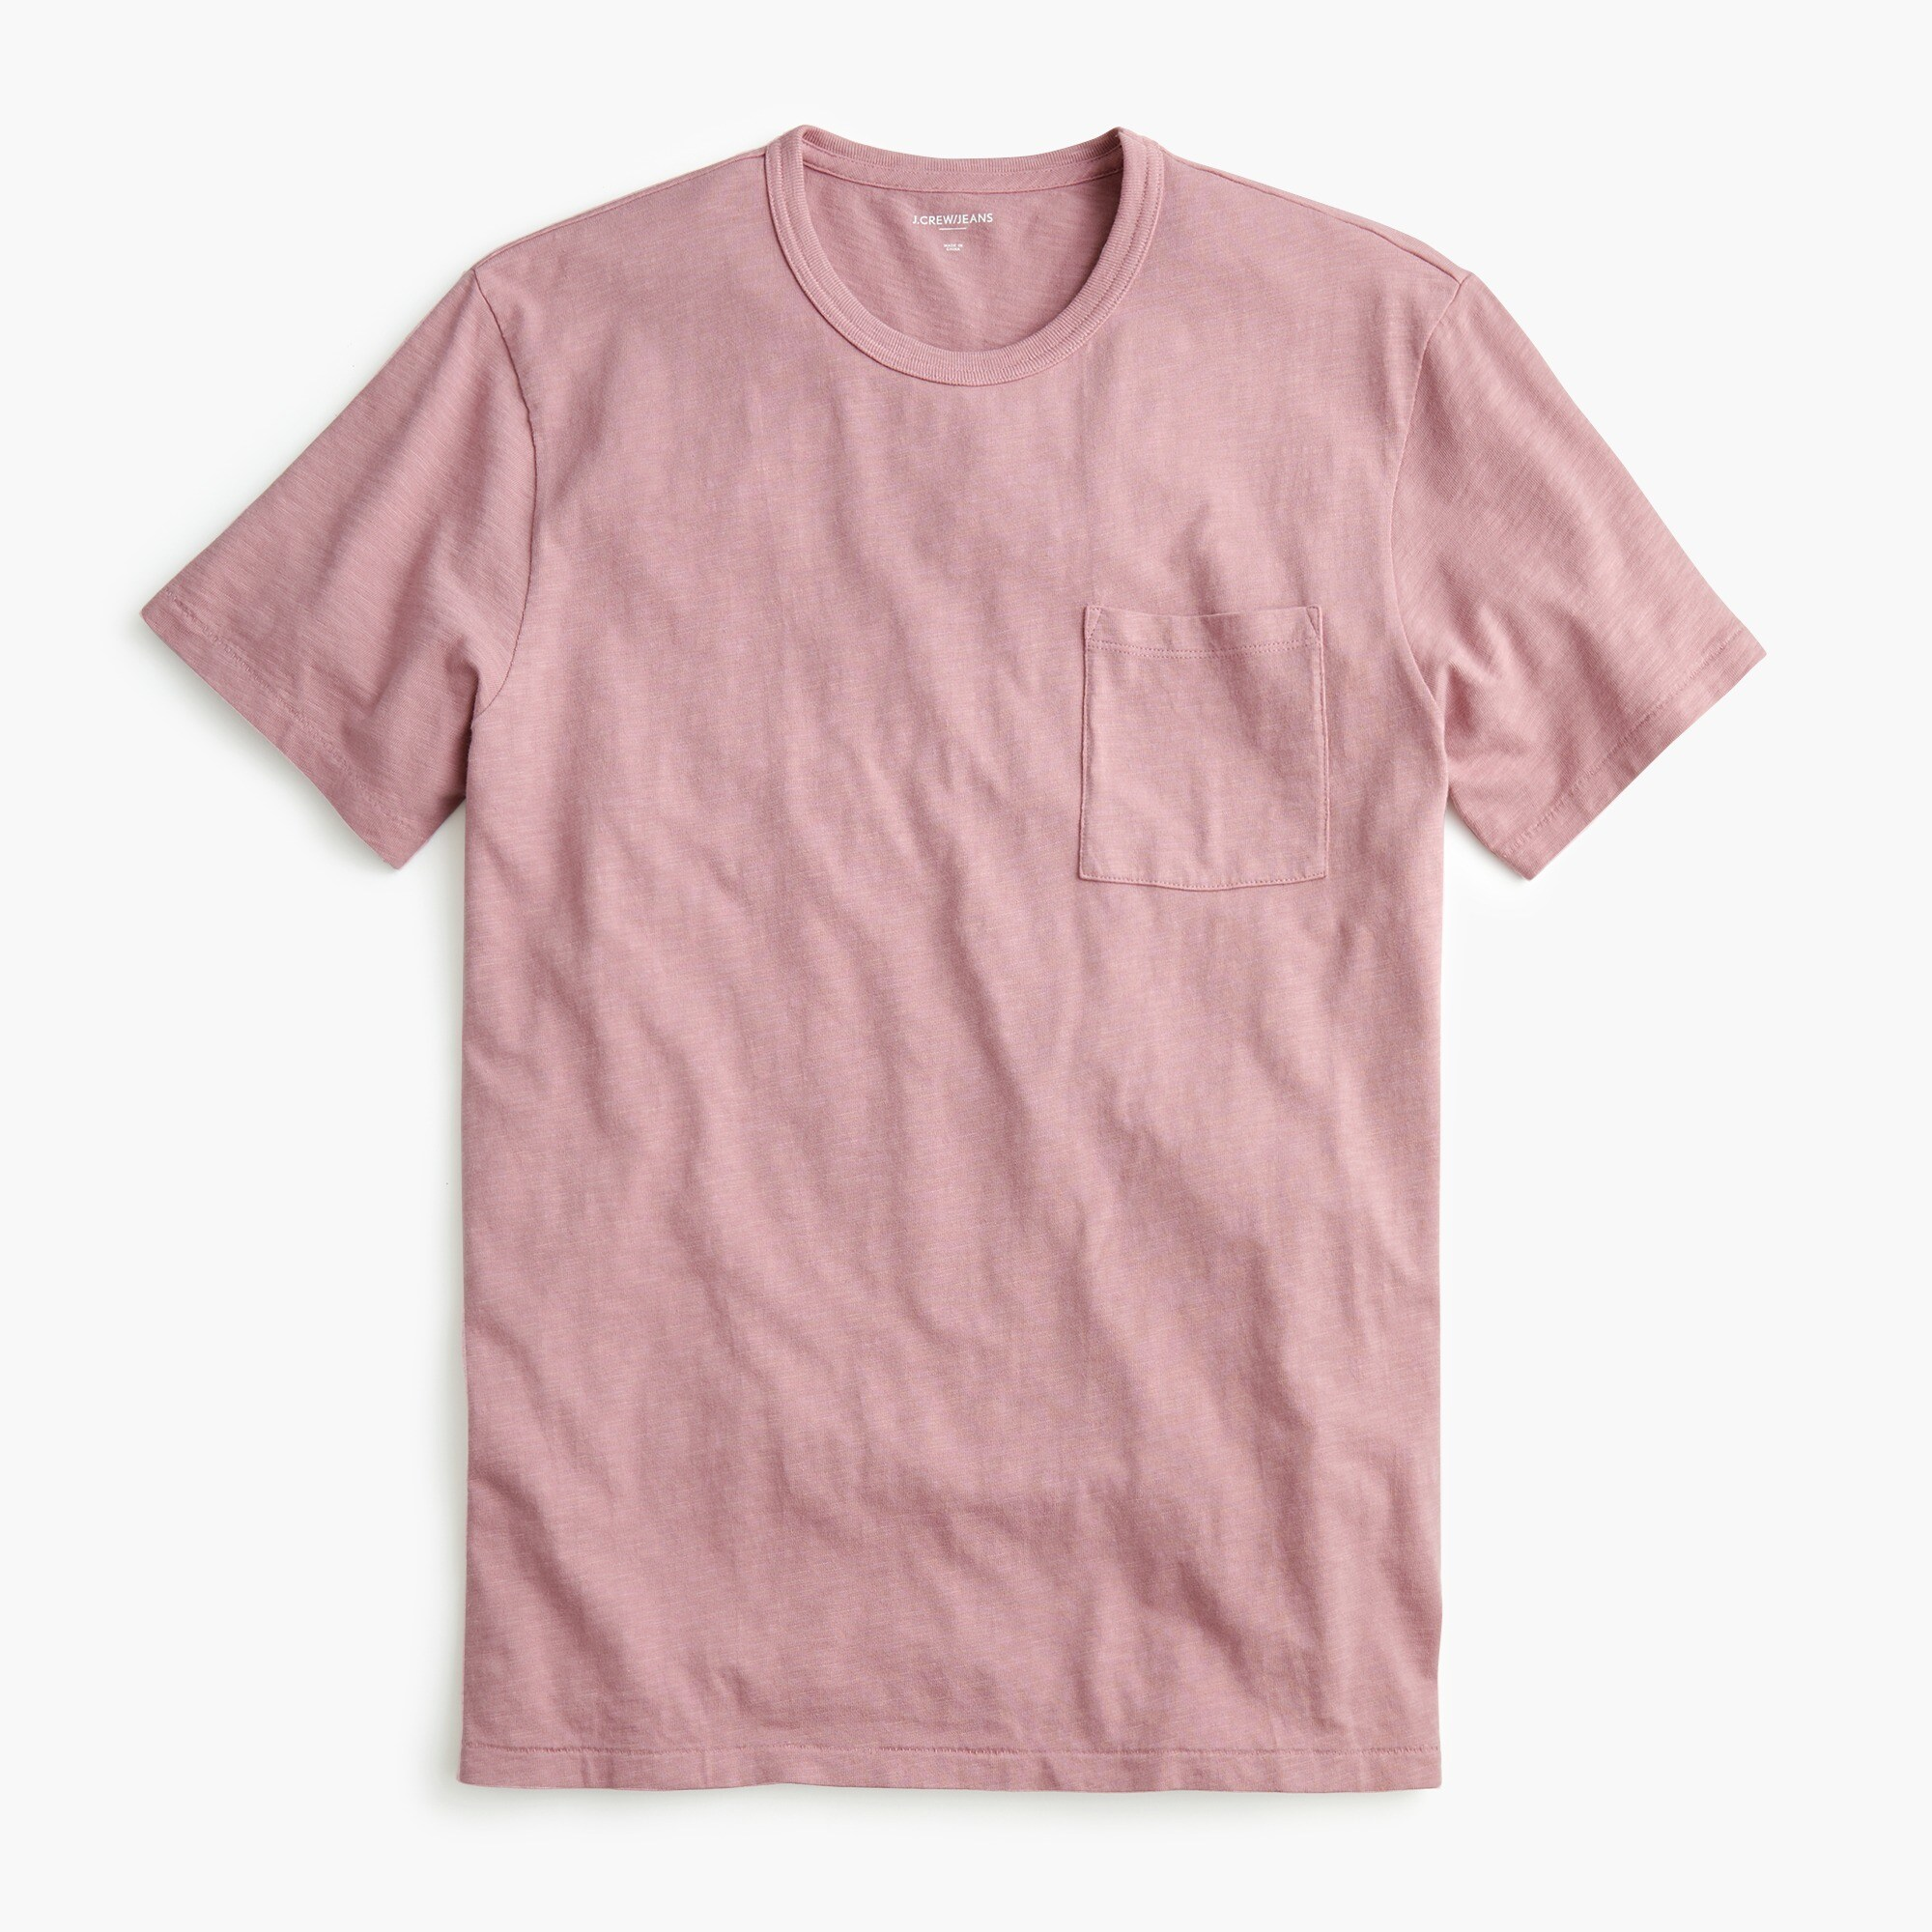 Image 1 for Tall garment-dyed slub cotton crewneck T-shirt